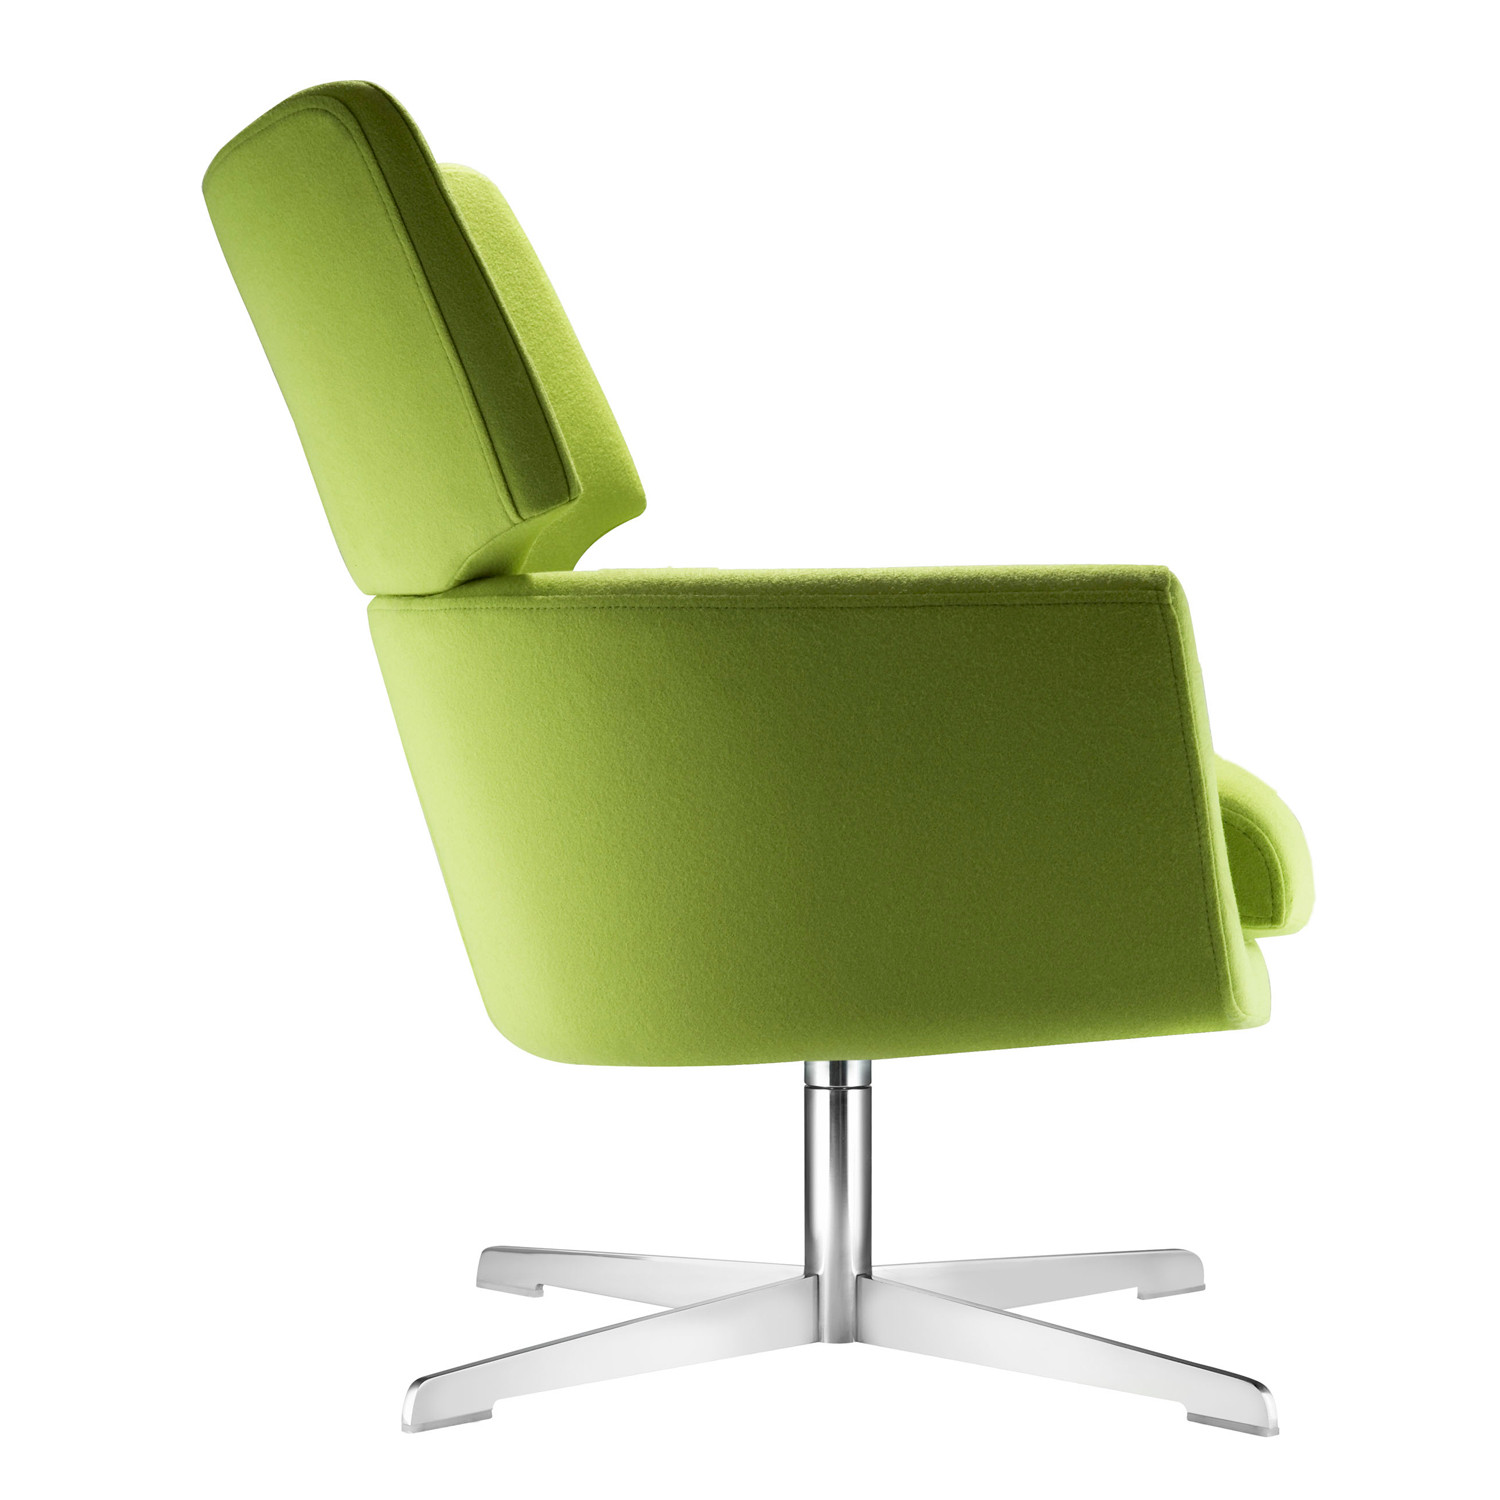 Kala Lounge Chair with 4-Star Base